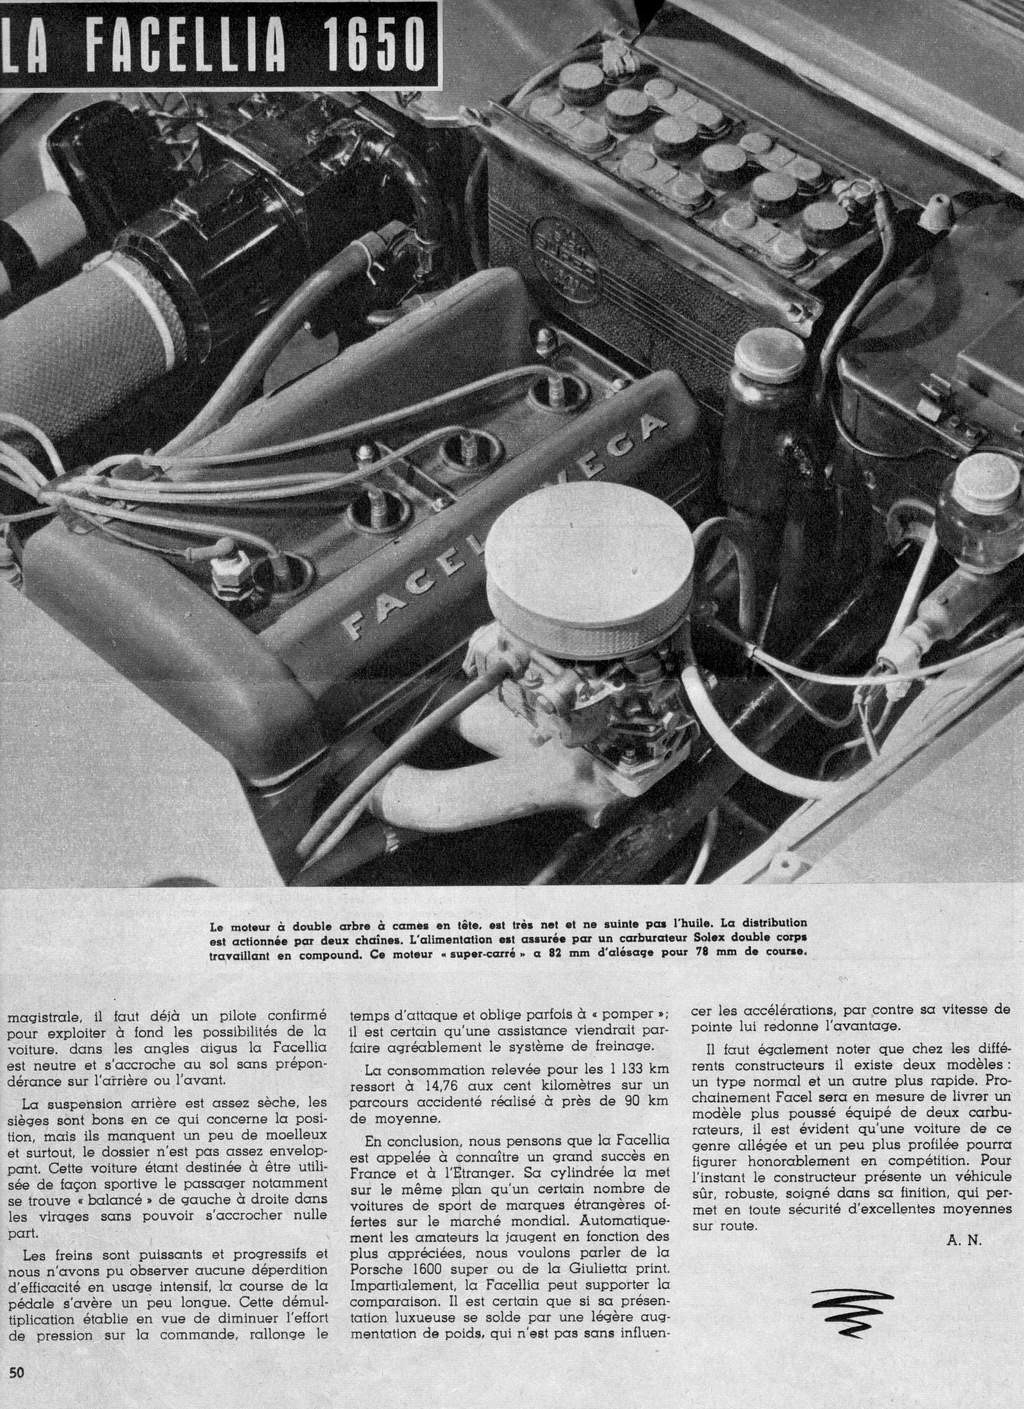 Test Facellia Fa Automobile 1960 p6-7 Epson NGxga